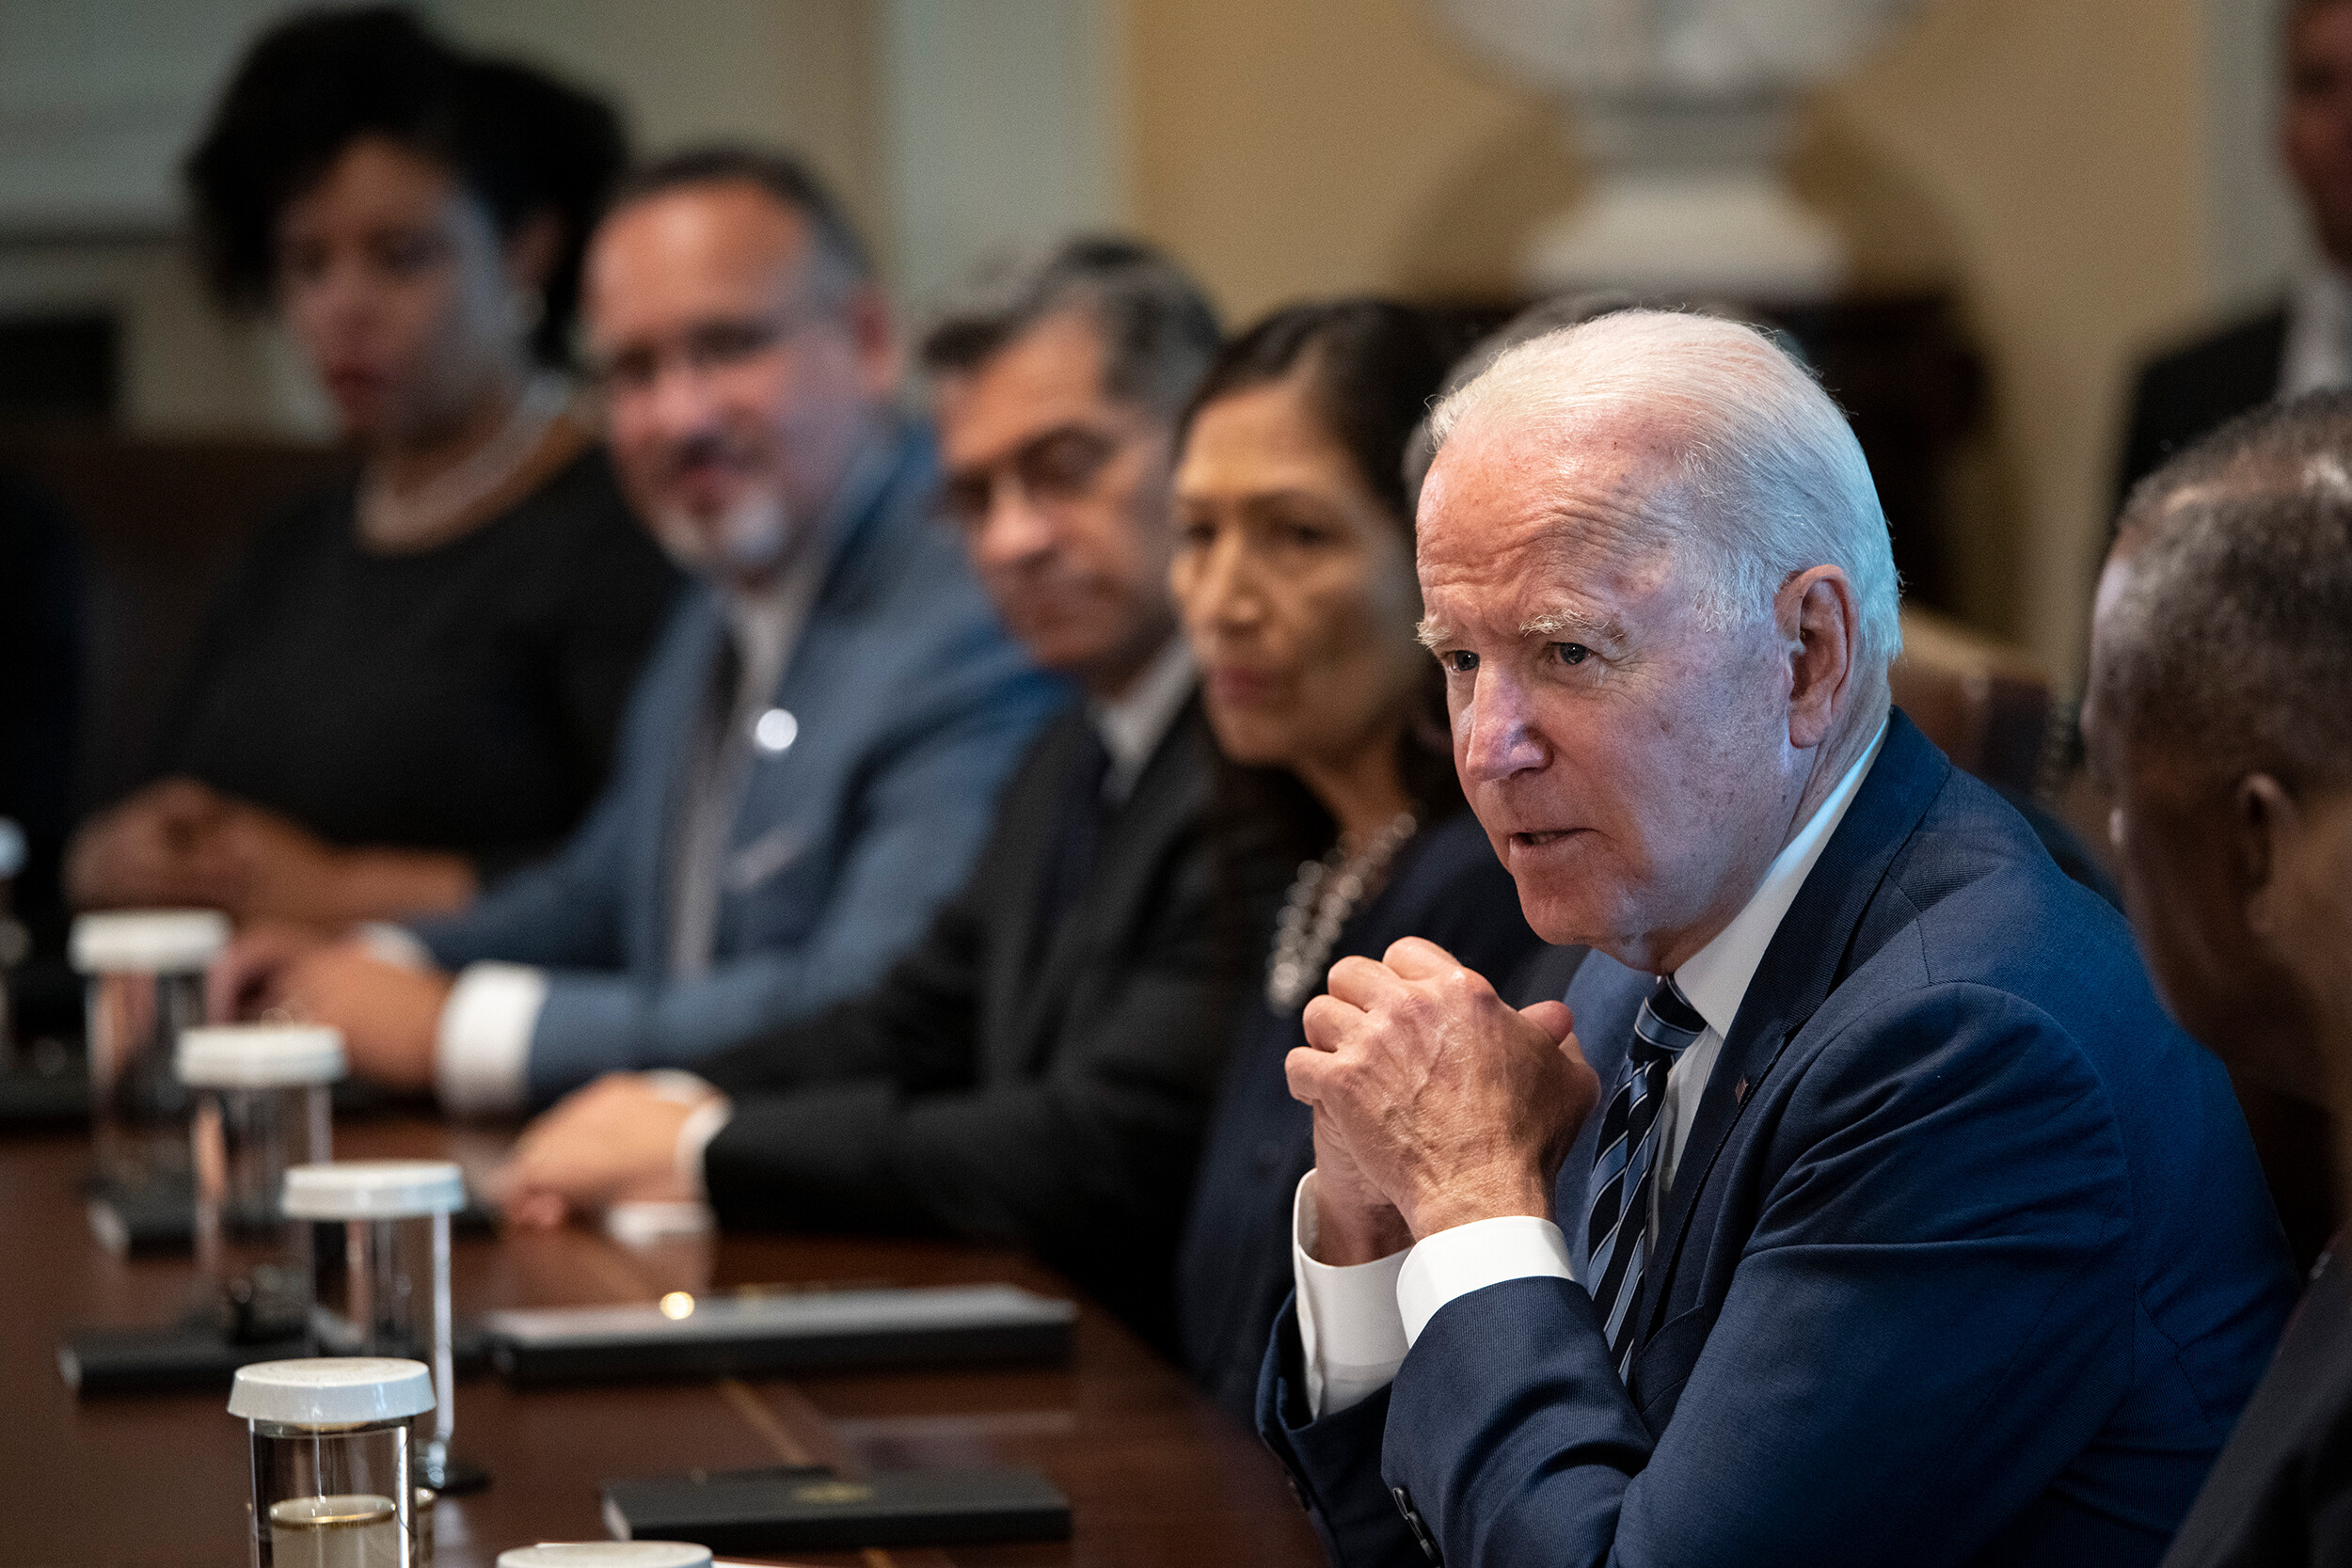 <i>Drew Angerer/Getty Images North America/Getty Images</i><br/>U.S. President Joe Biden speaks at the start of a Cabinet meeting in the Cabinet Room of the White House on July 20